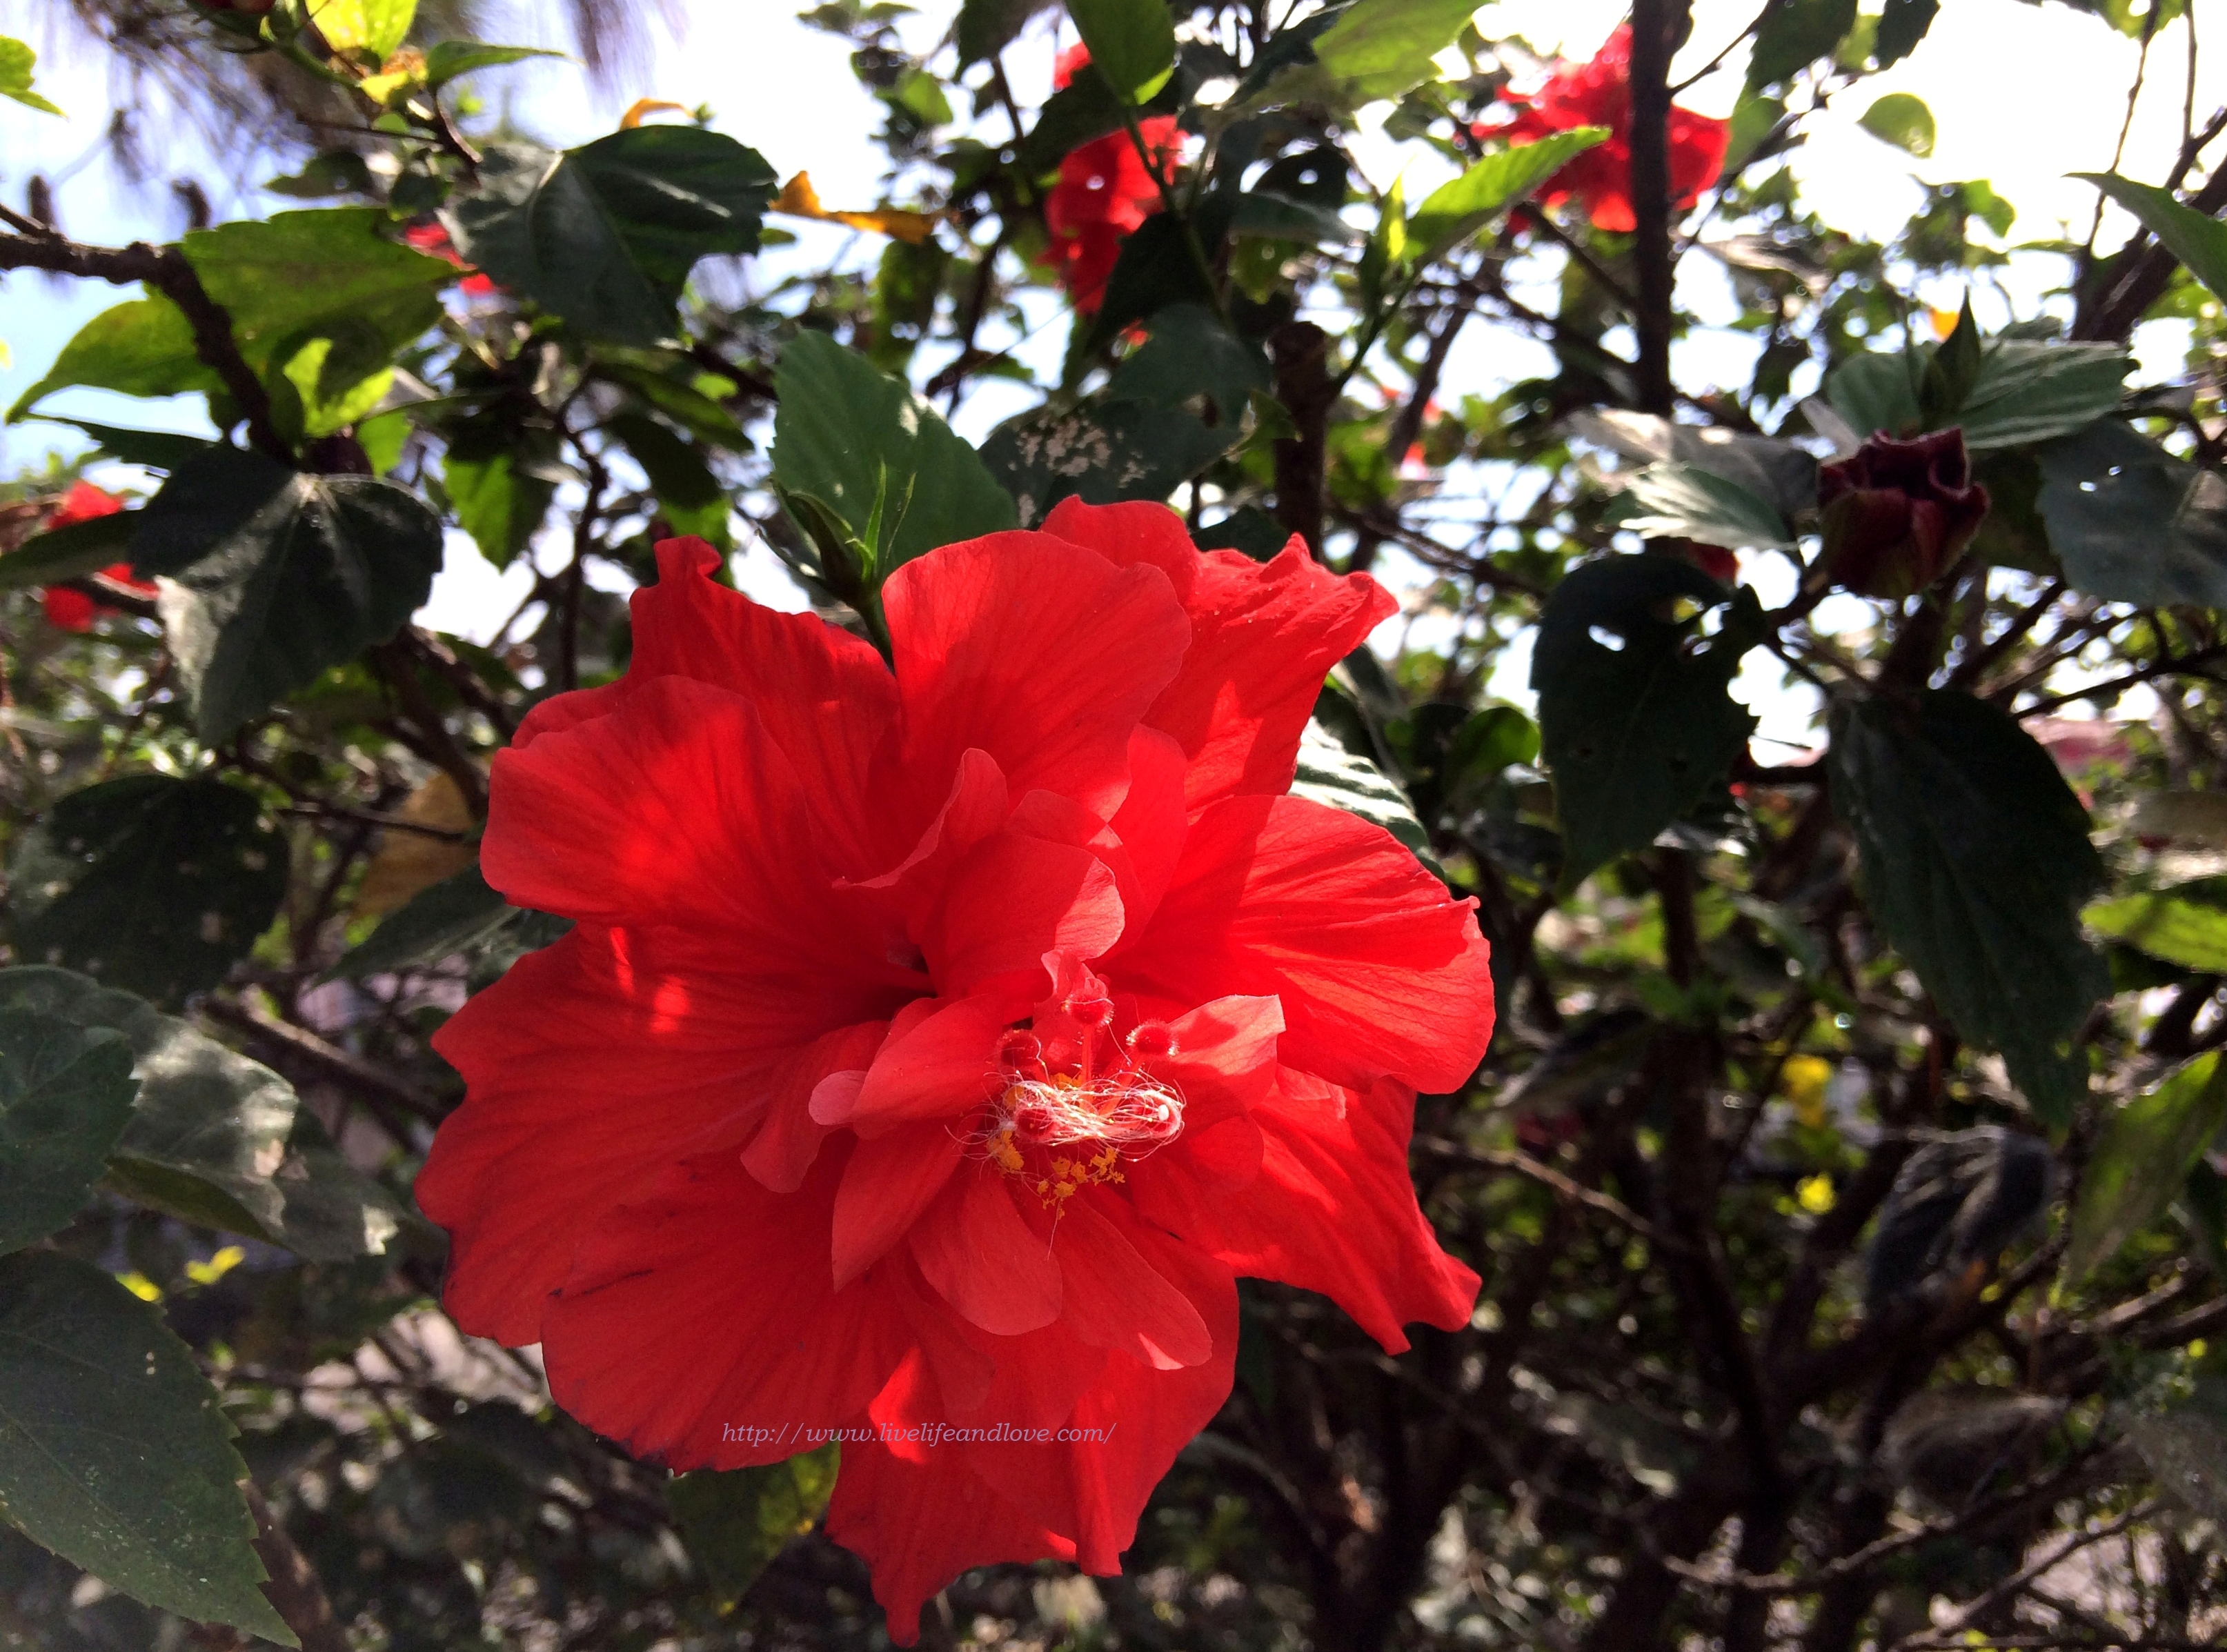 Double flowering rosa sinensis live life and love 20 best pictures of double flowering hibiscus rosa sinensis izmirmasajfo Image collections